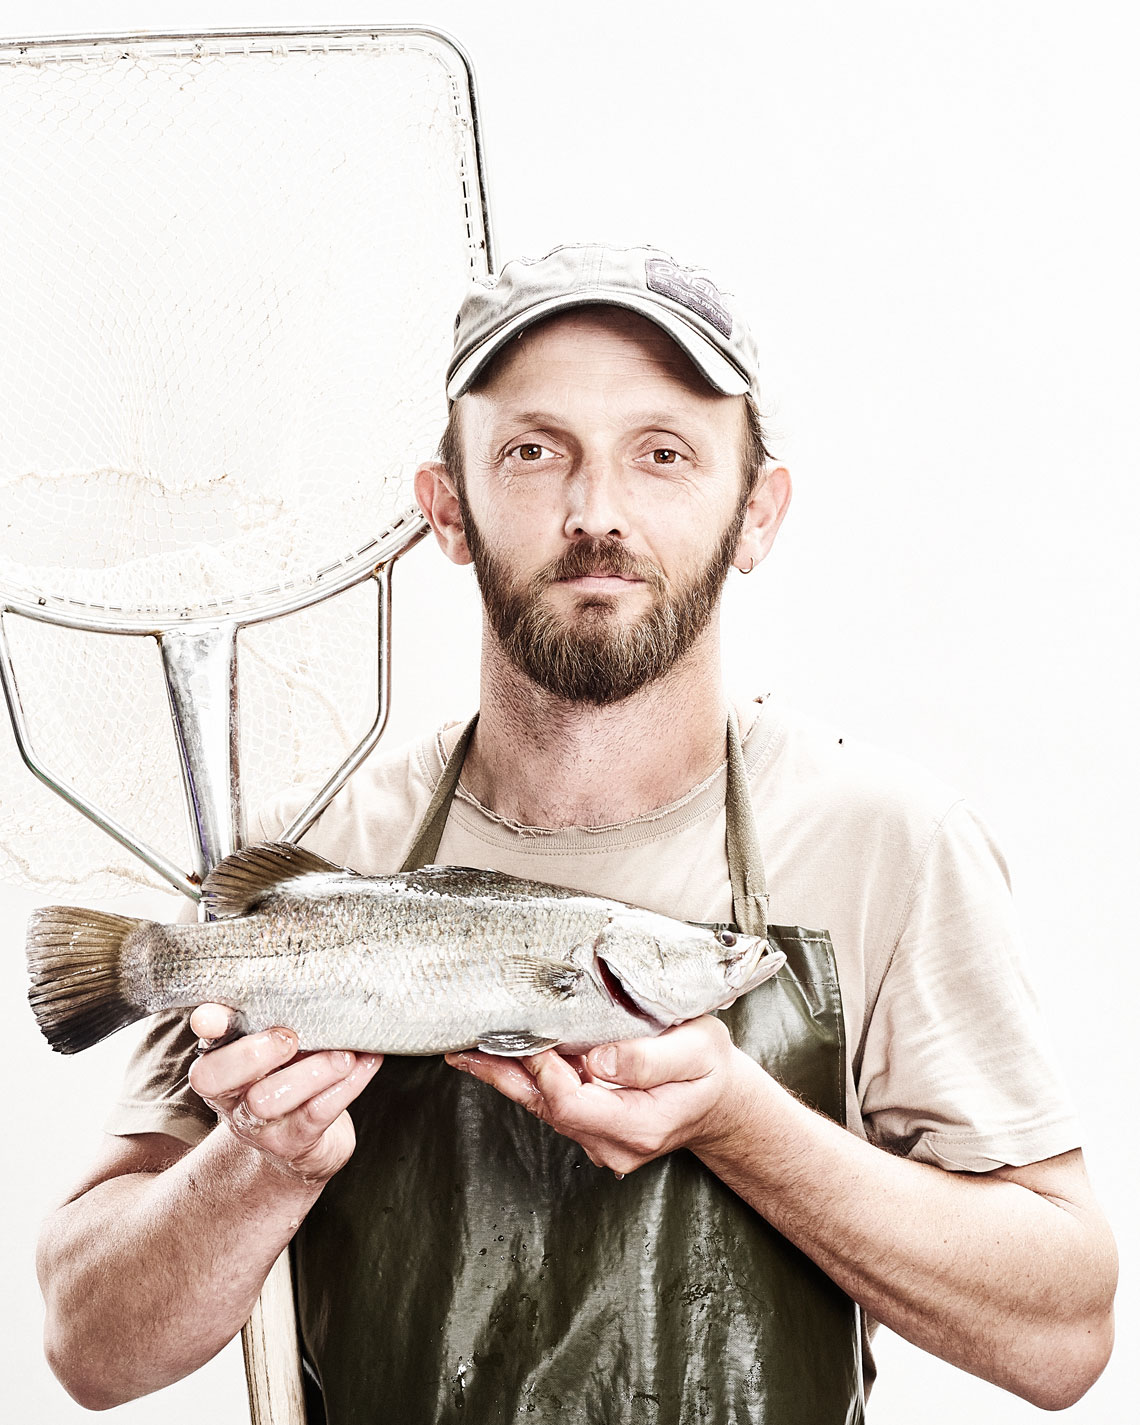 Paul Wreford, Fish Farmer